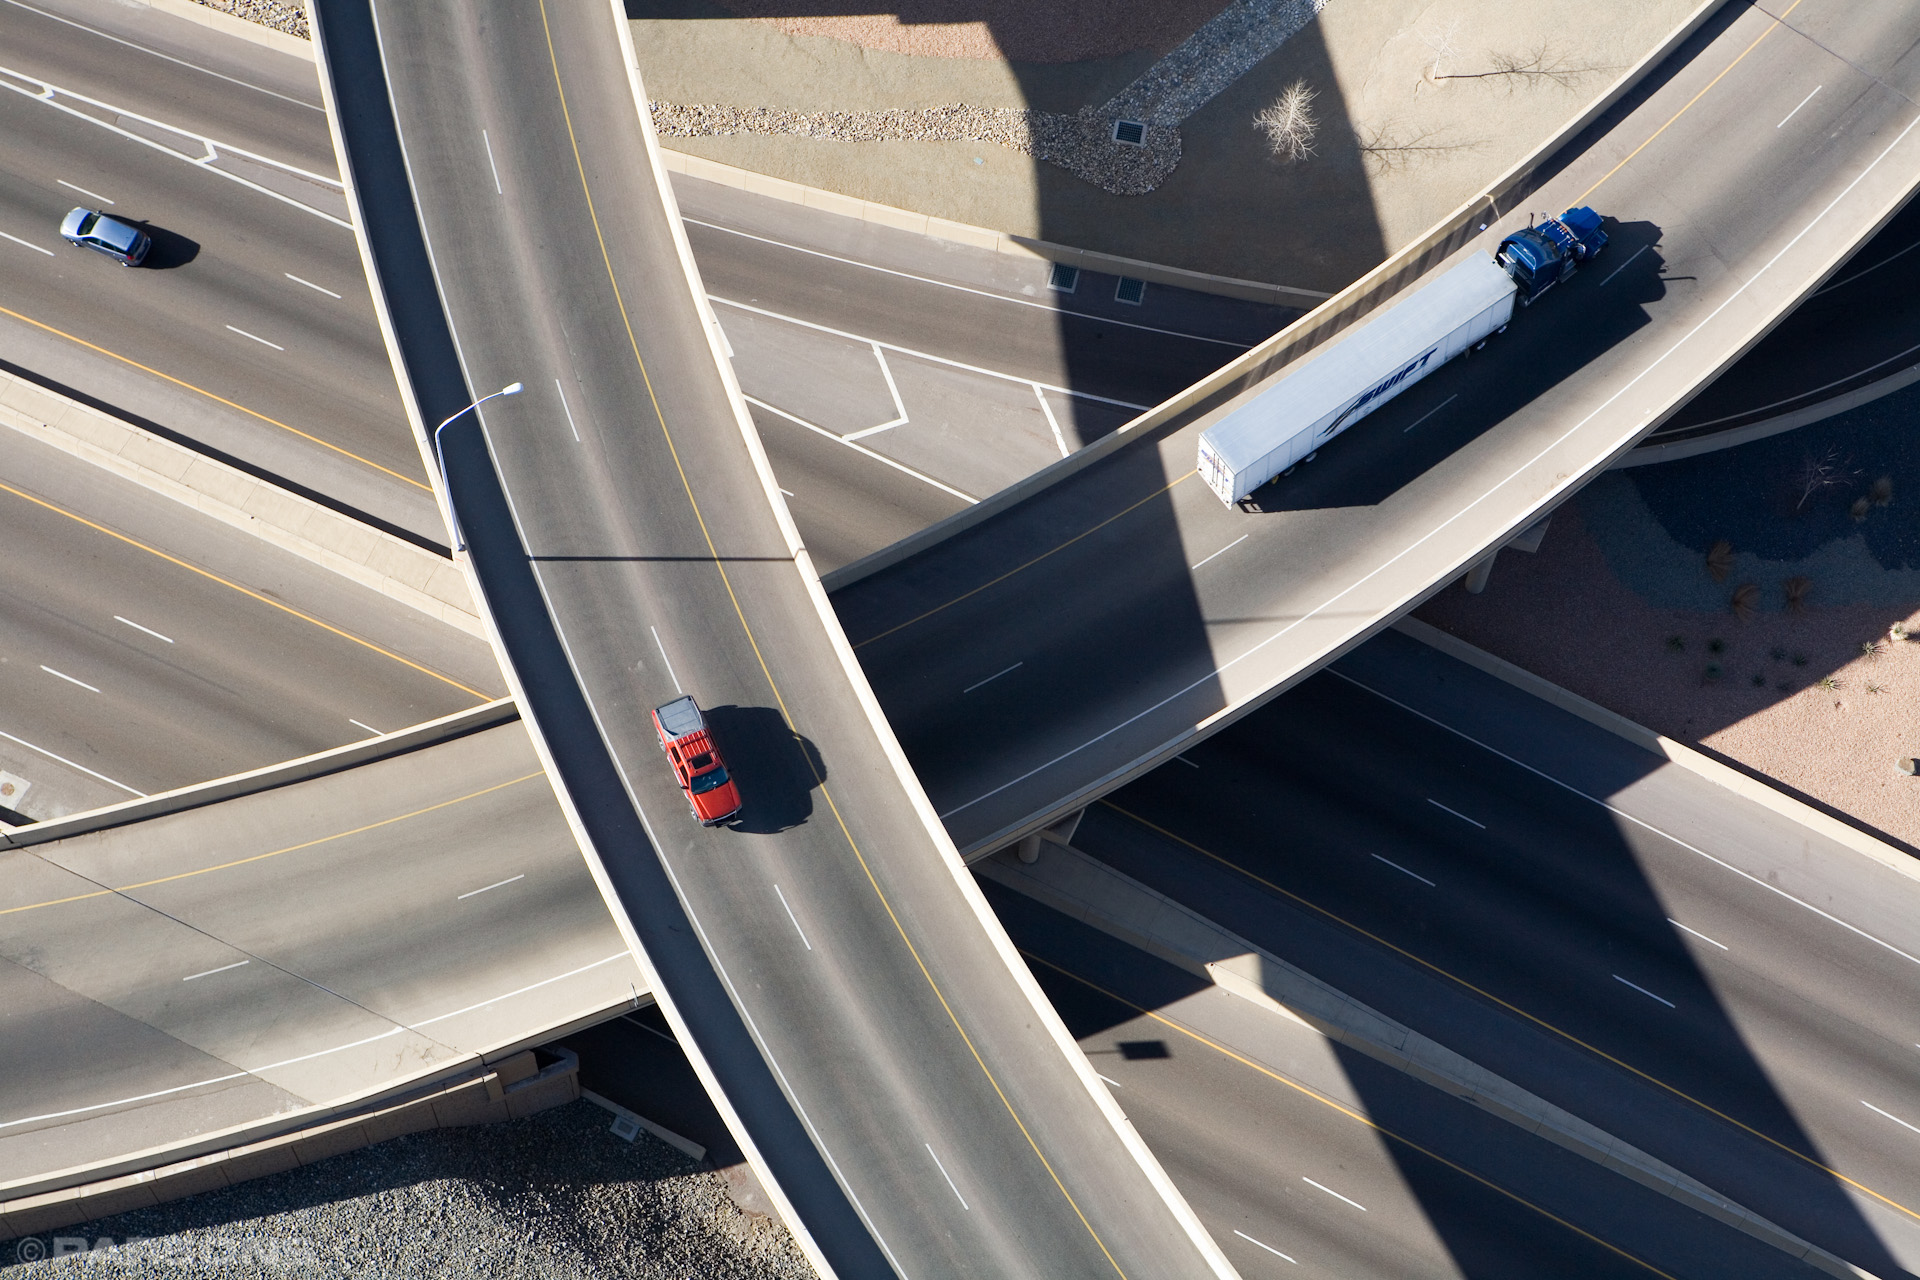 Civil-Engineering-Aerial-COORS-Albuquerque-New-Mexico-Highway-I40.JPG